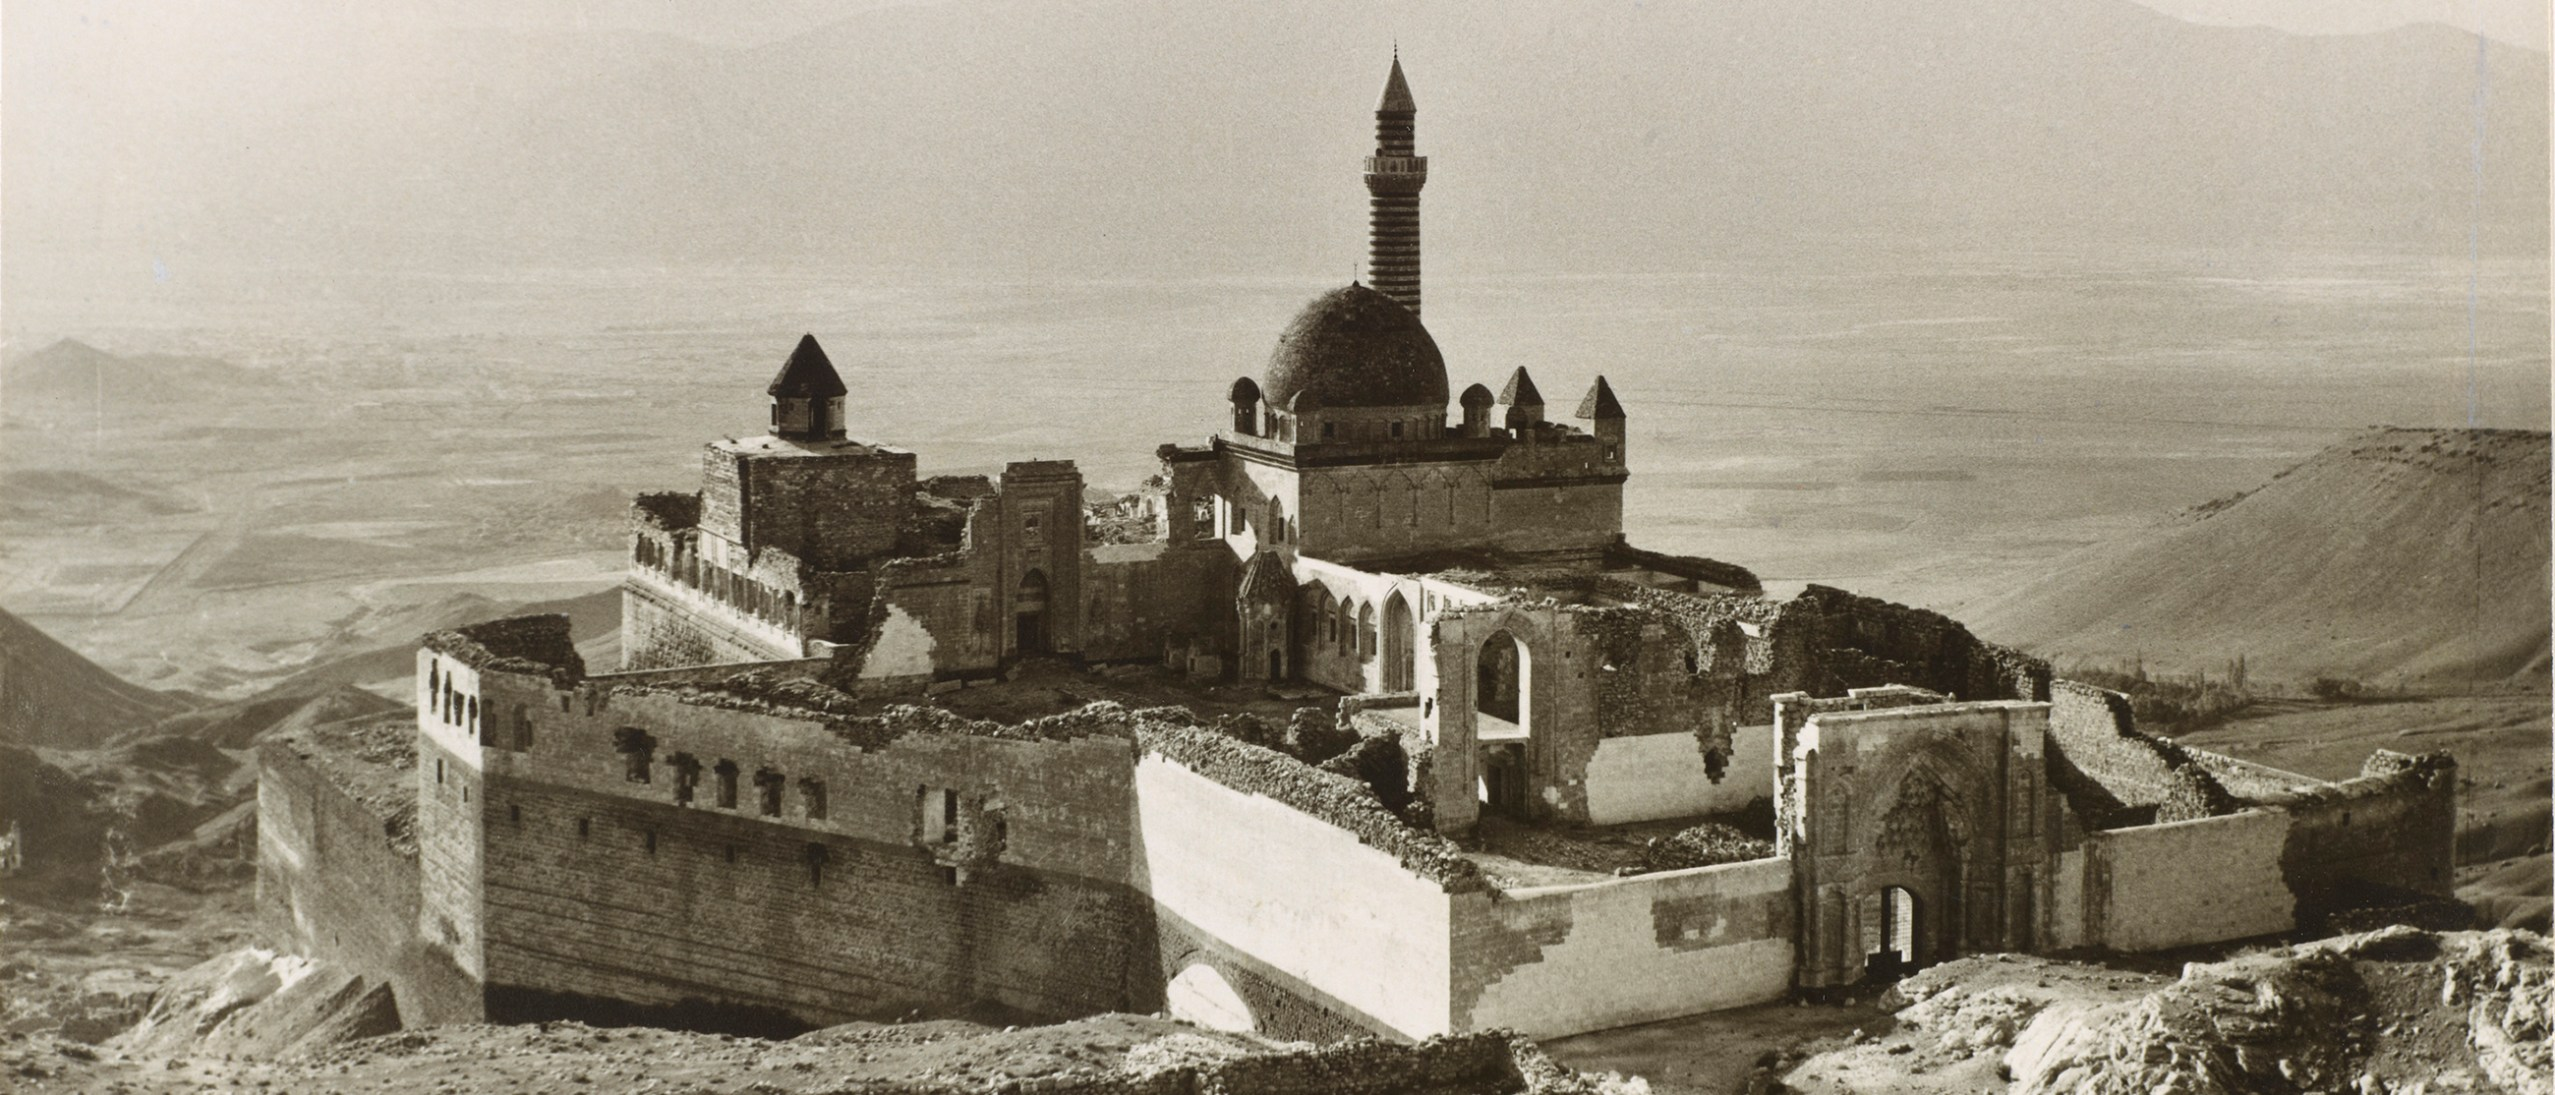 Detail photograph, ŀshak Paşa Palace, Doğubayazıt; Ara Güler; silver gelatin print, 1965; Raymond A. Hare collection, Freer Gallery of Art and Arthur M. Sackler Gallery Archives, A1989.03.3.9